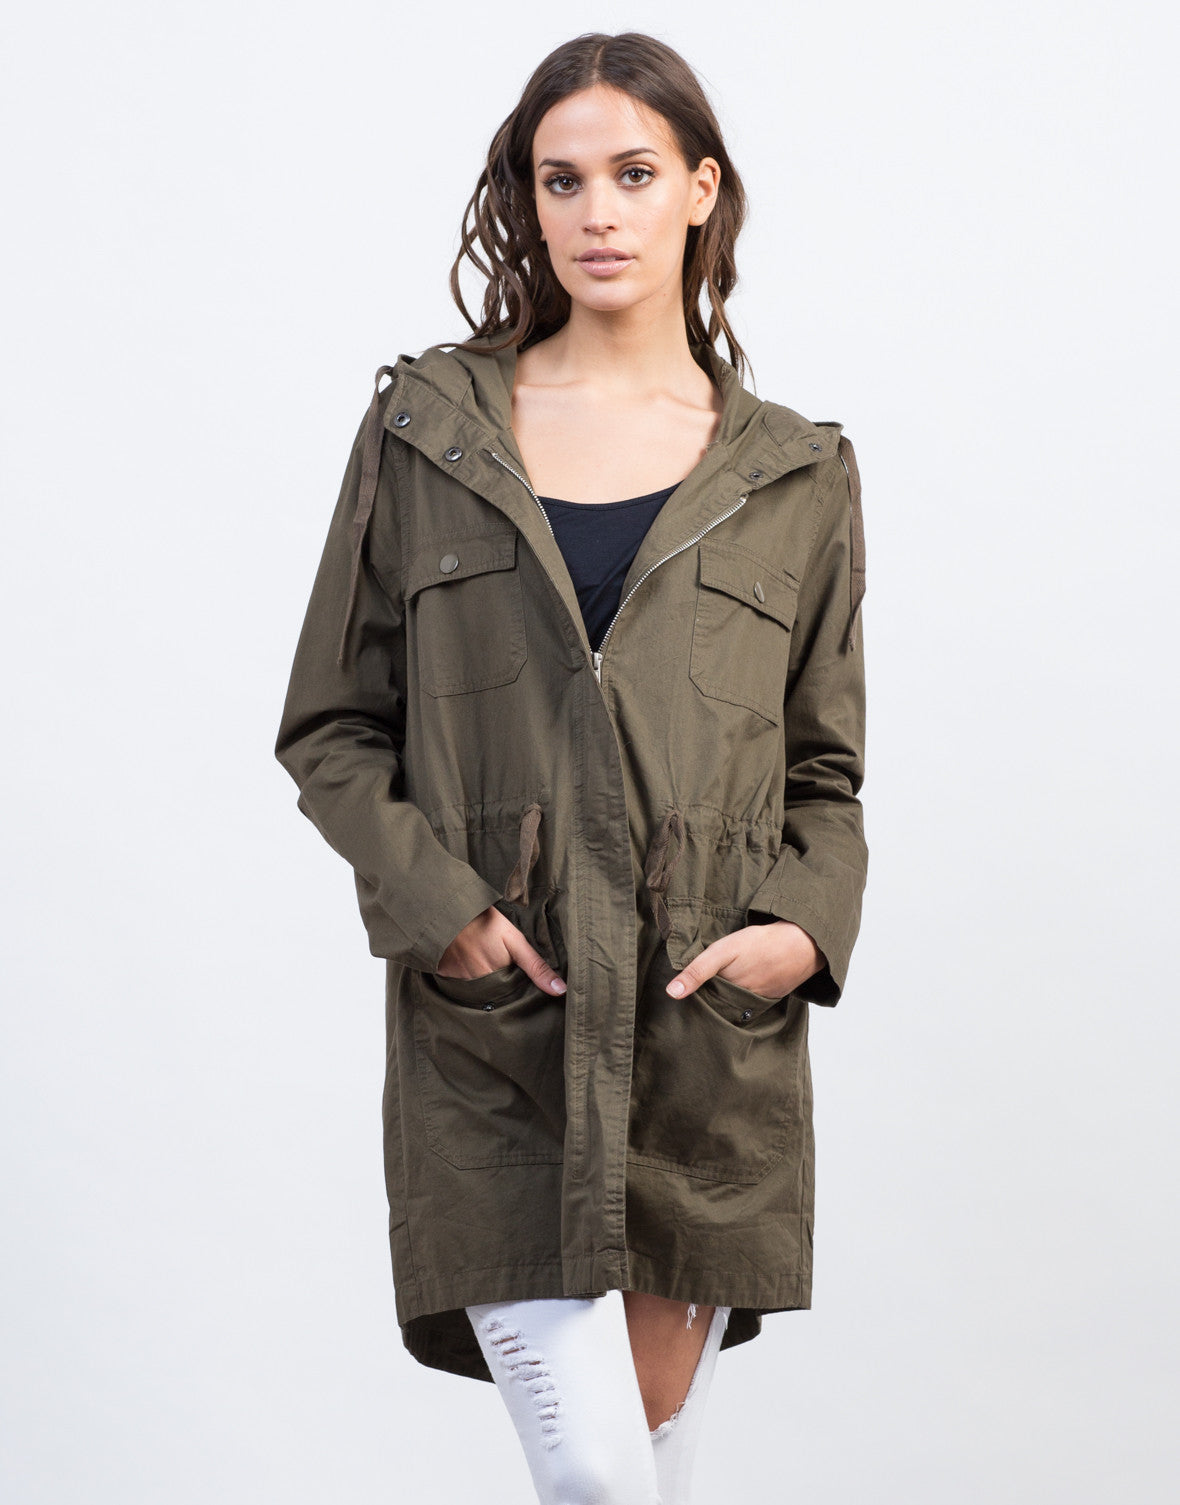 Front View of Army Anorak